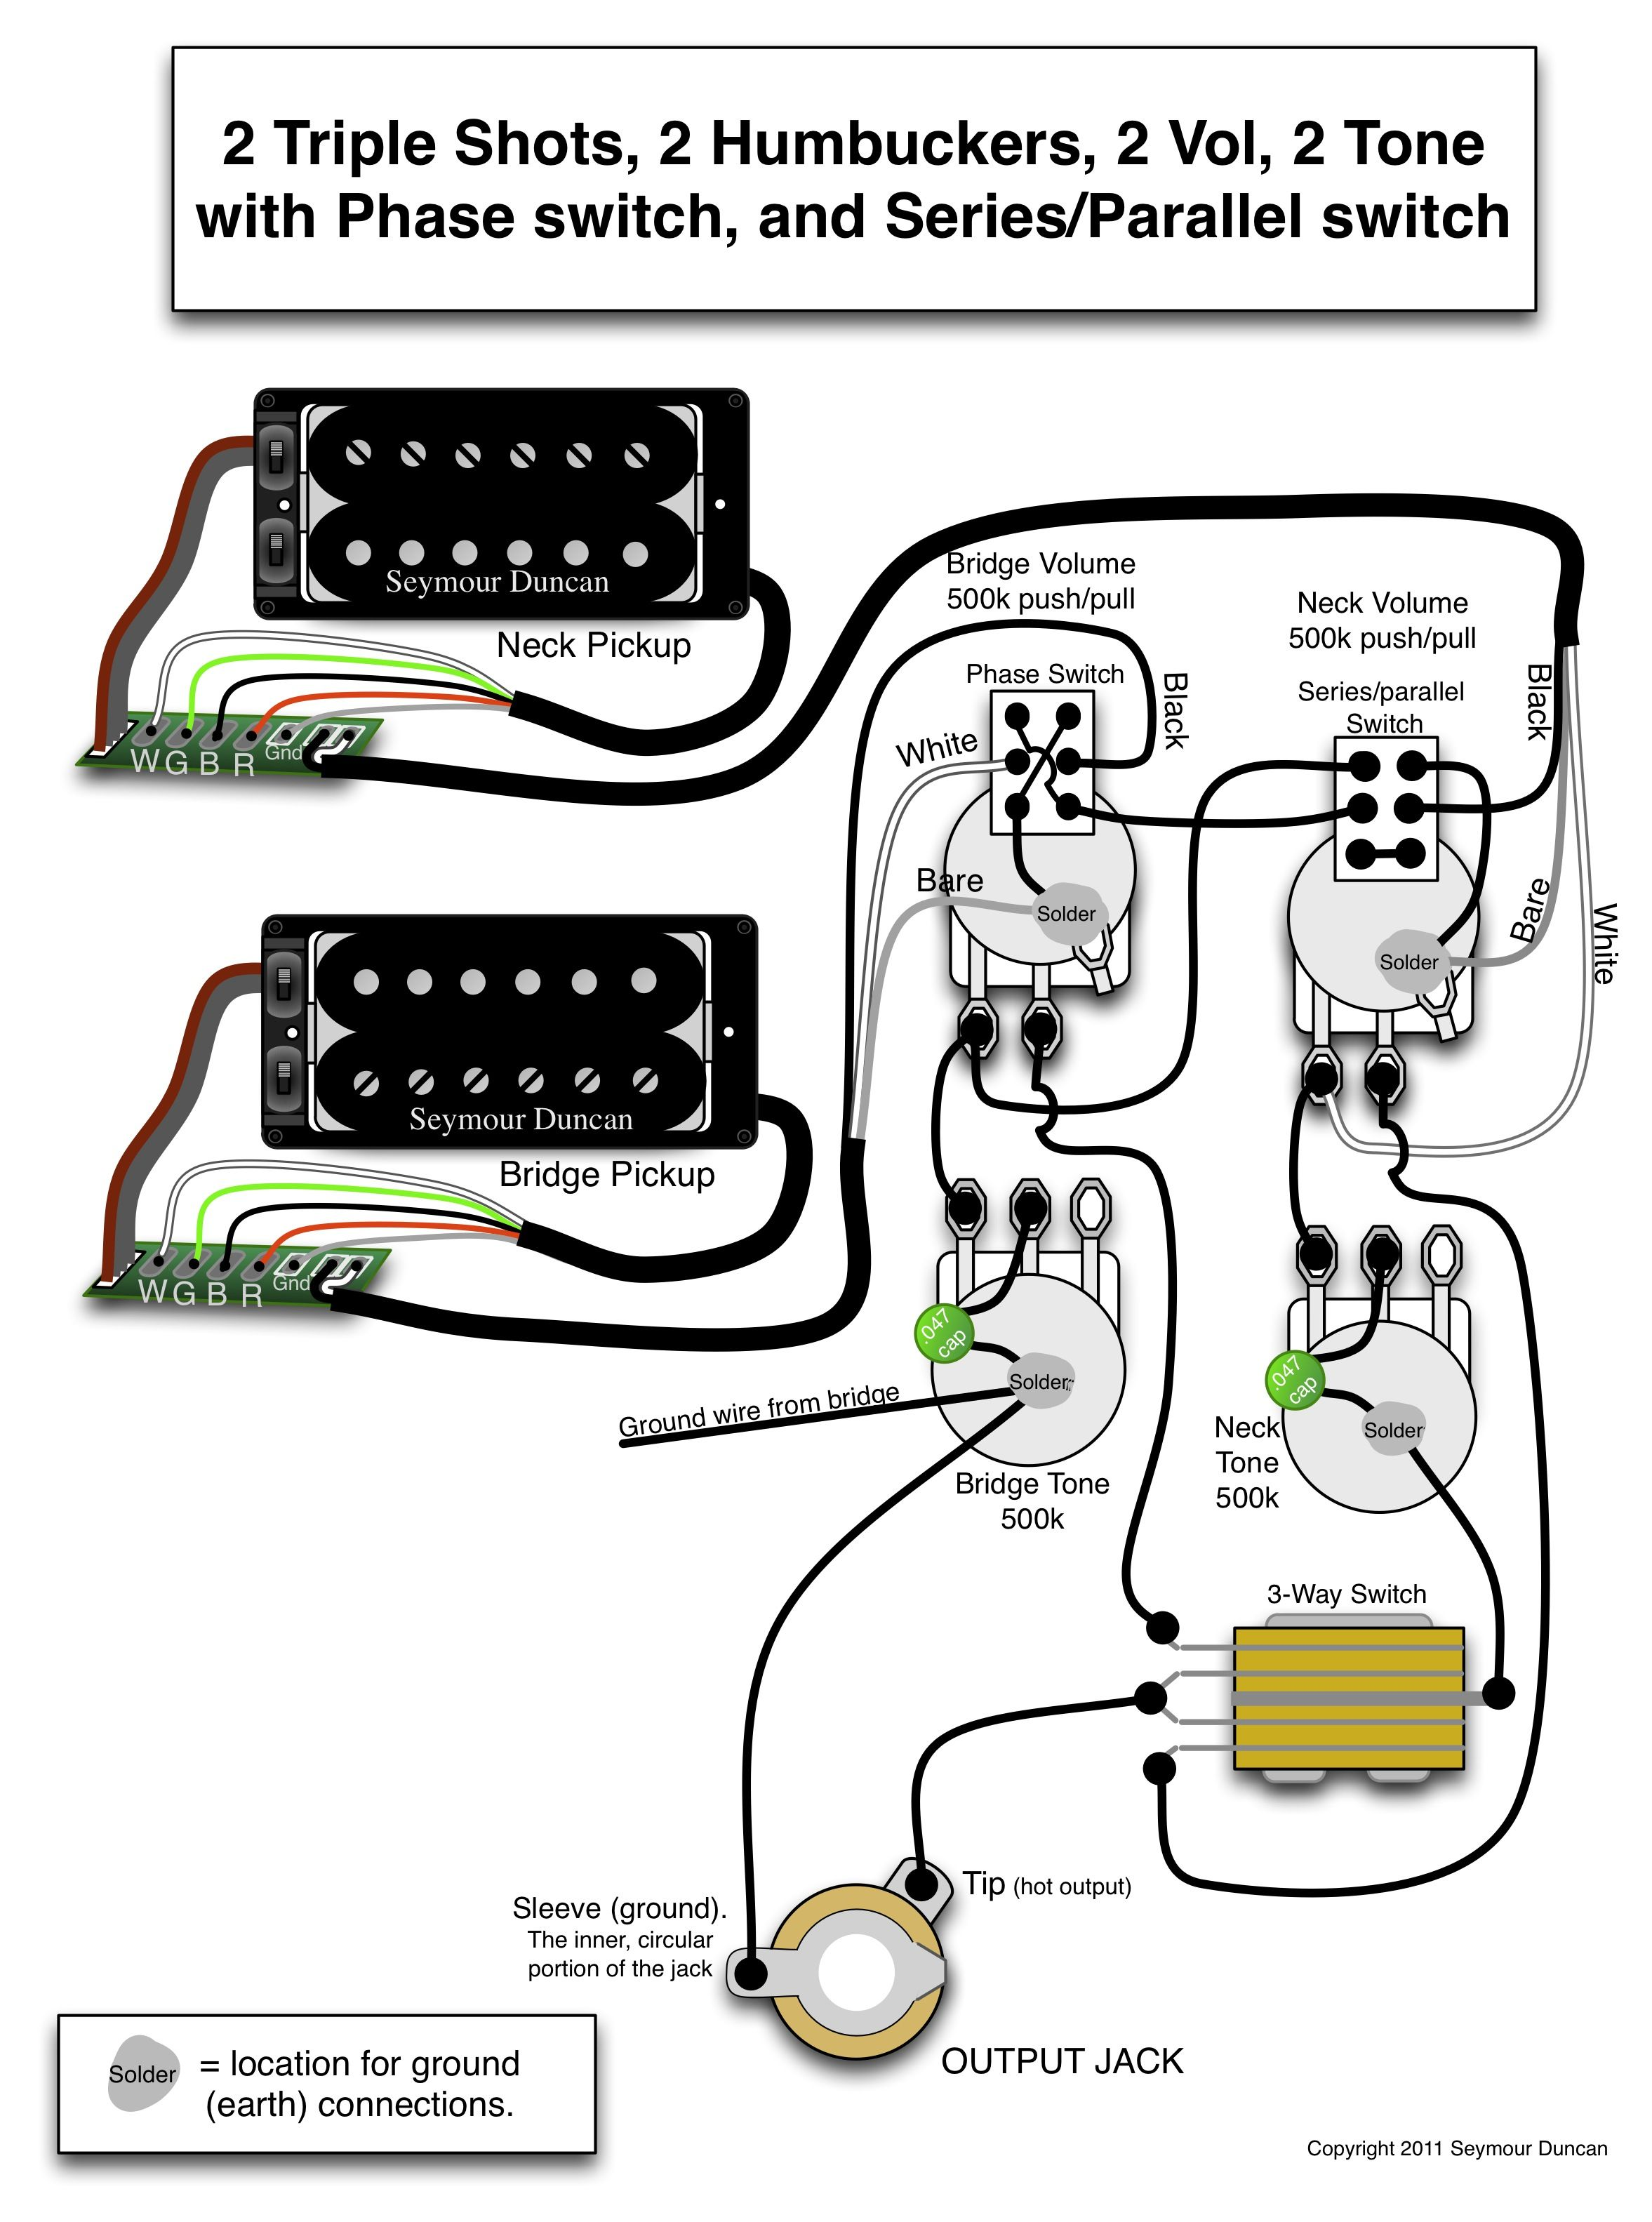 14dc4408abcf3c075a00cd280c1ea7ec seymour duncan wiring diagram 2 triple shots, 2 humbuckers, 2 wiring diagram for seymour duncan pickups at cos-gaming.co